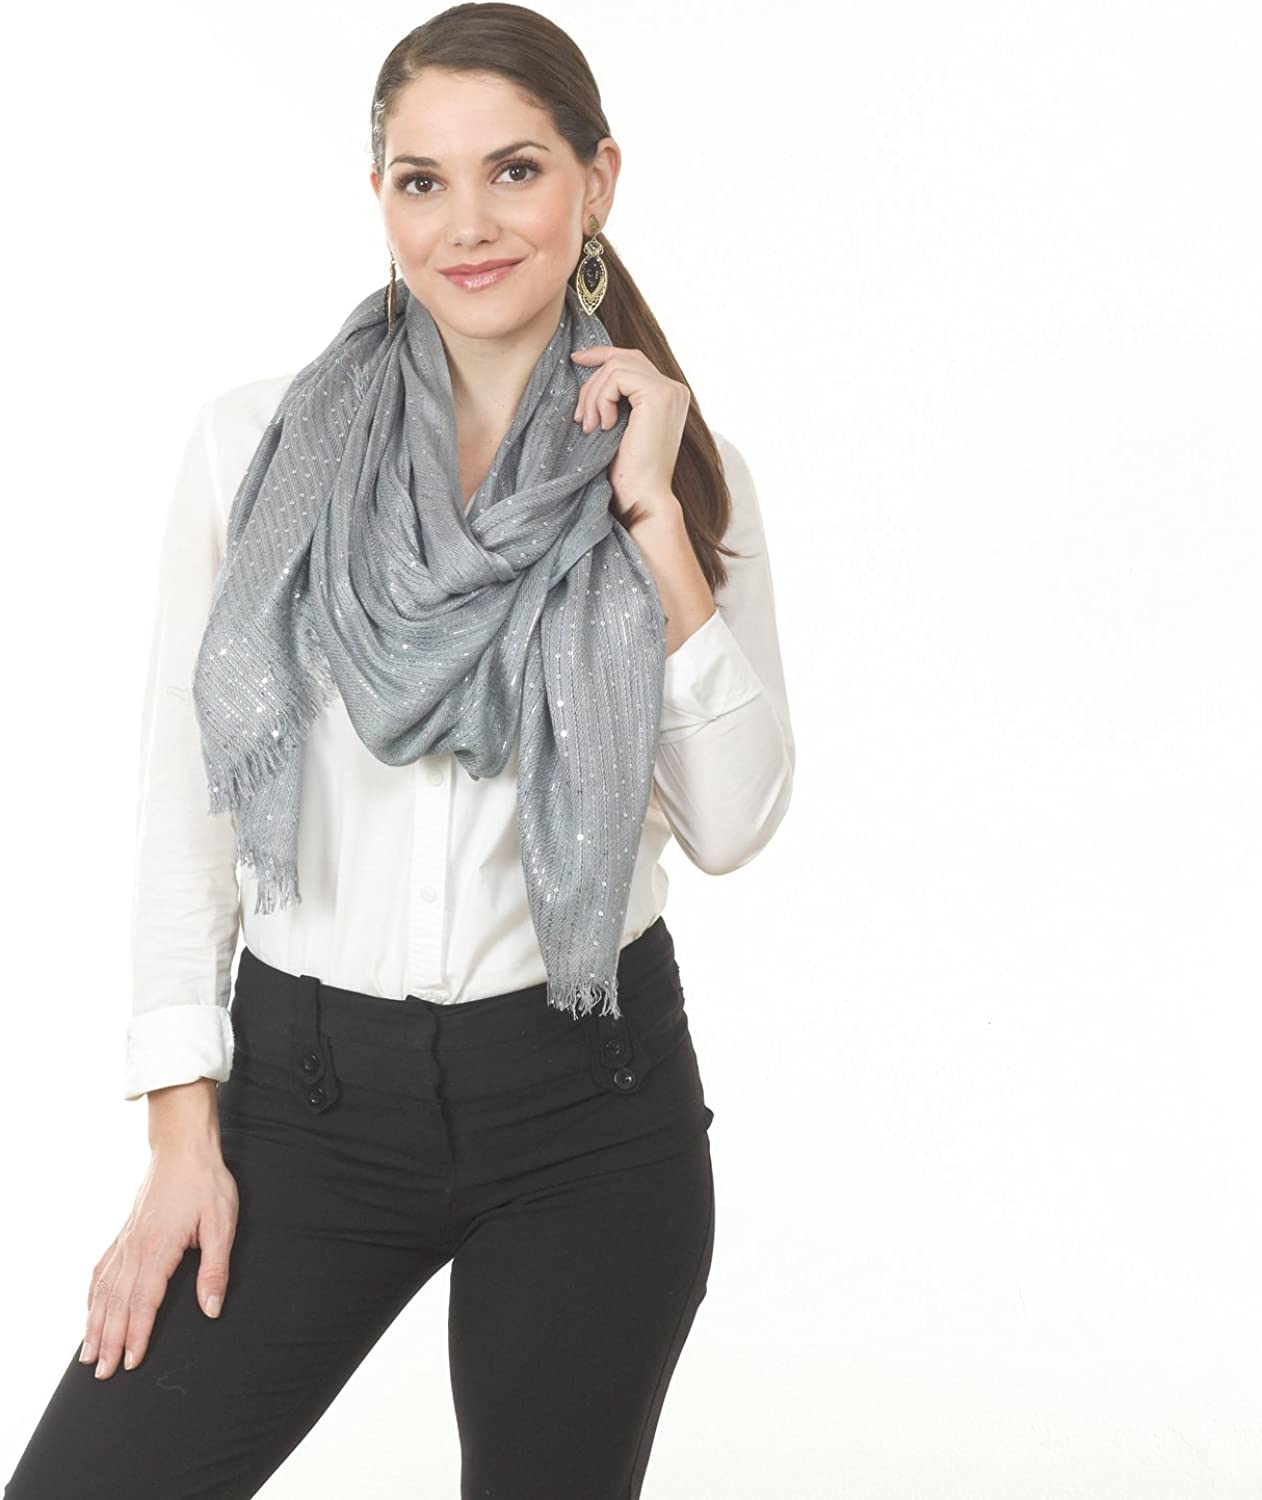 Taleen by Carino Fashions Grey Sequined Scarf  22 x70 , 100% viscose